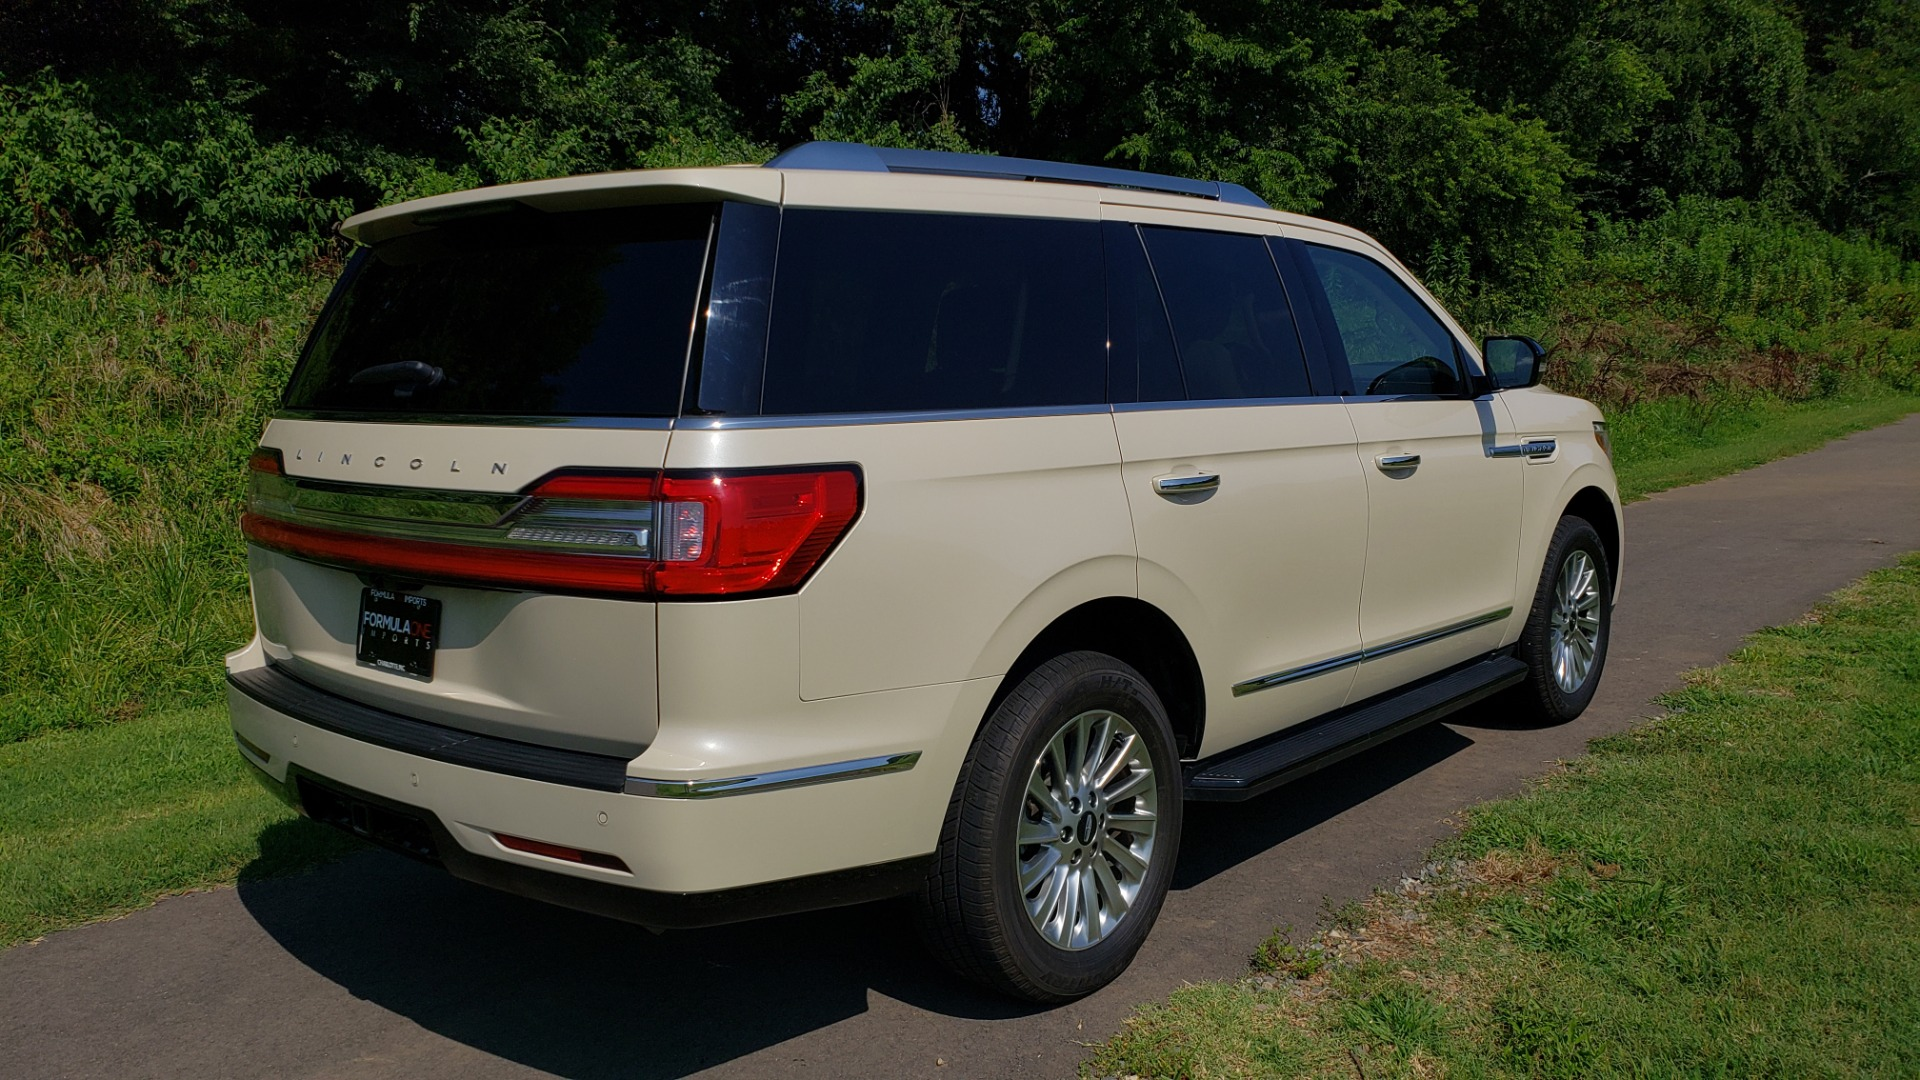 Used 2018 Lincoln NAVIGATOR PREMIERE 4X2 / TWIN-TURBO V6 / NAV / 3-ROW / REARVIEW for sale Sold at Formula Imports in Charlotte NC 28227 7